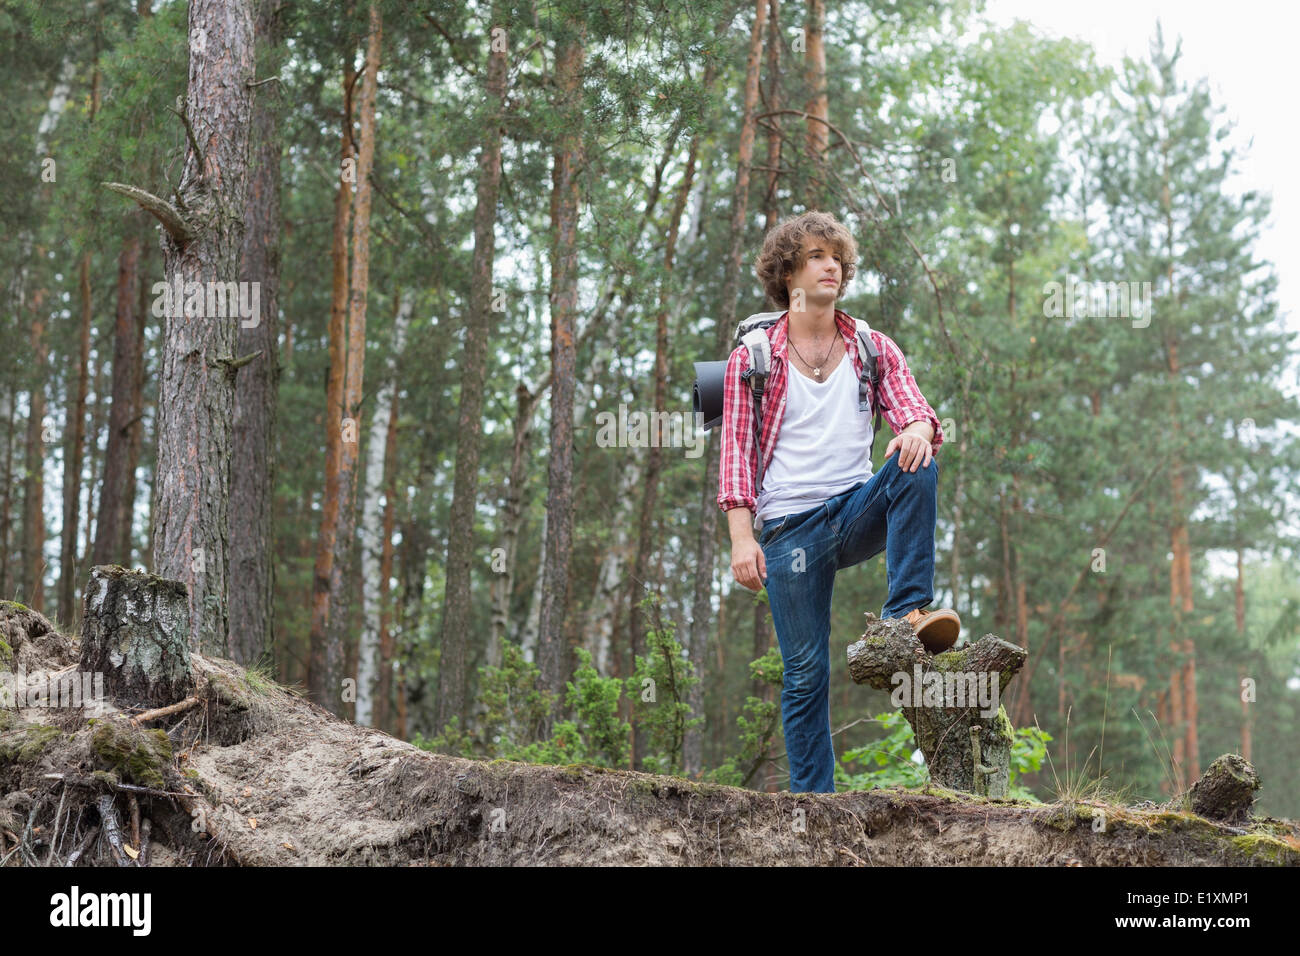 Full length of male backpacker standing in forest - Stock Image